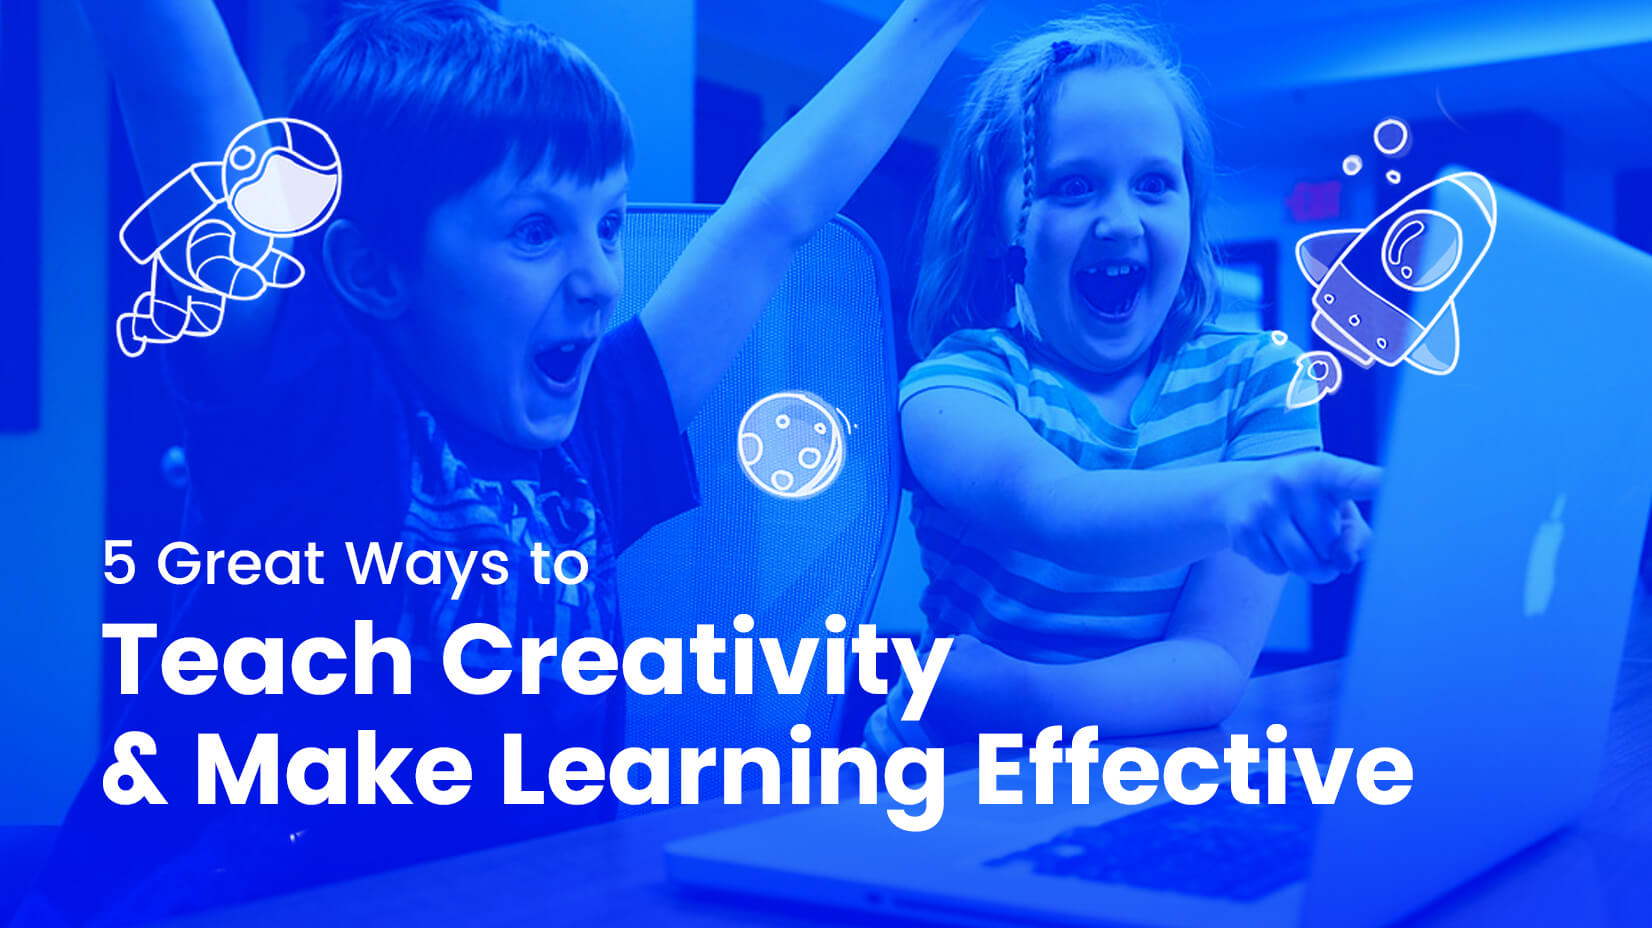 5 Great Ways to Teach Creativity & Make Learning Effective